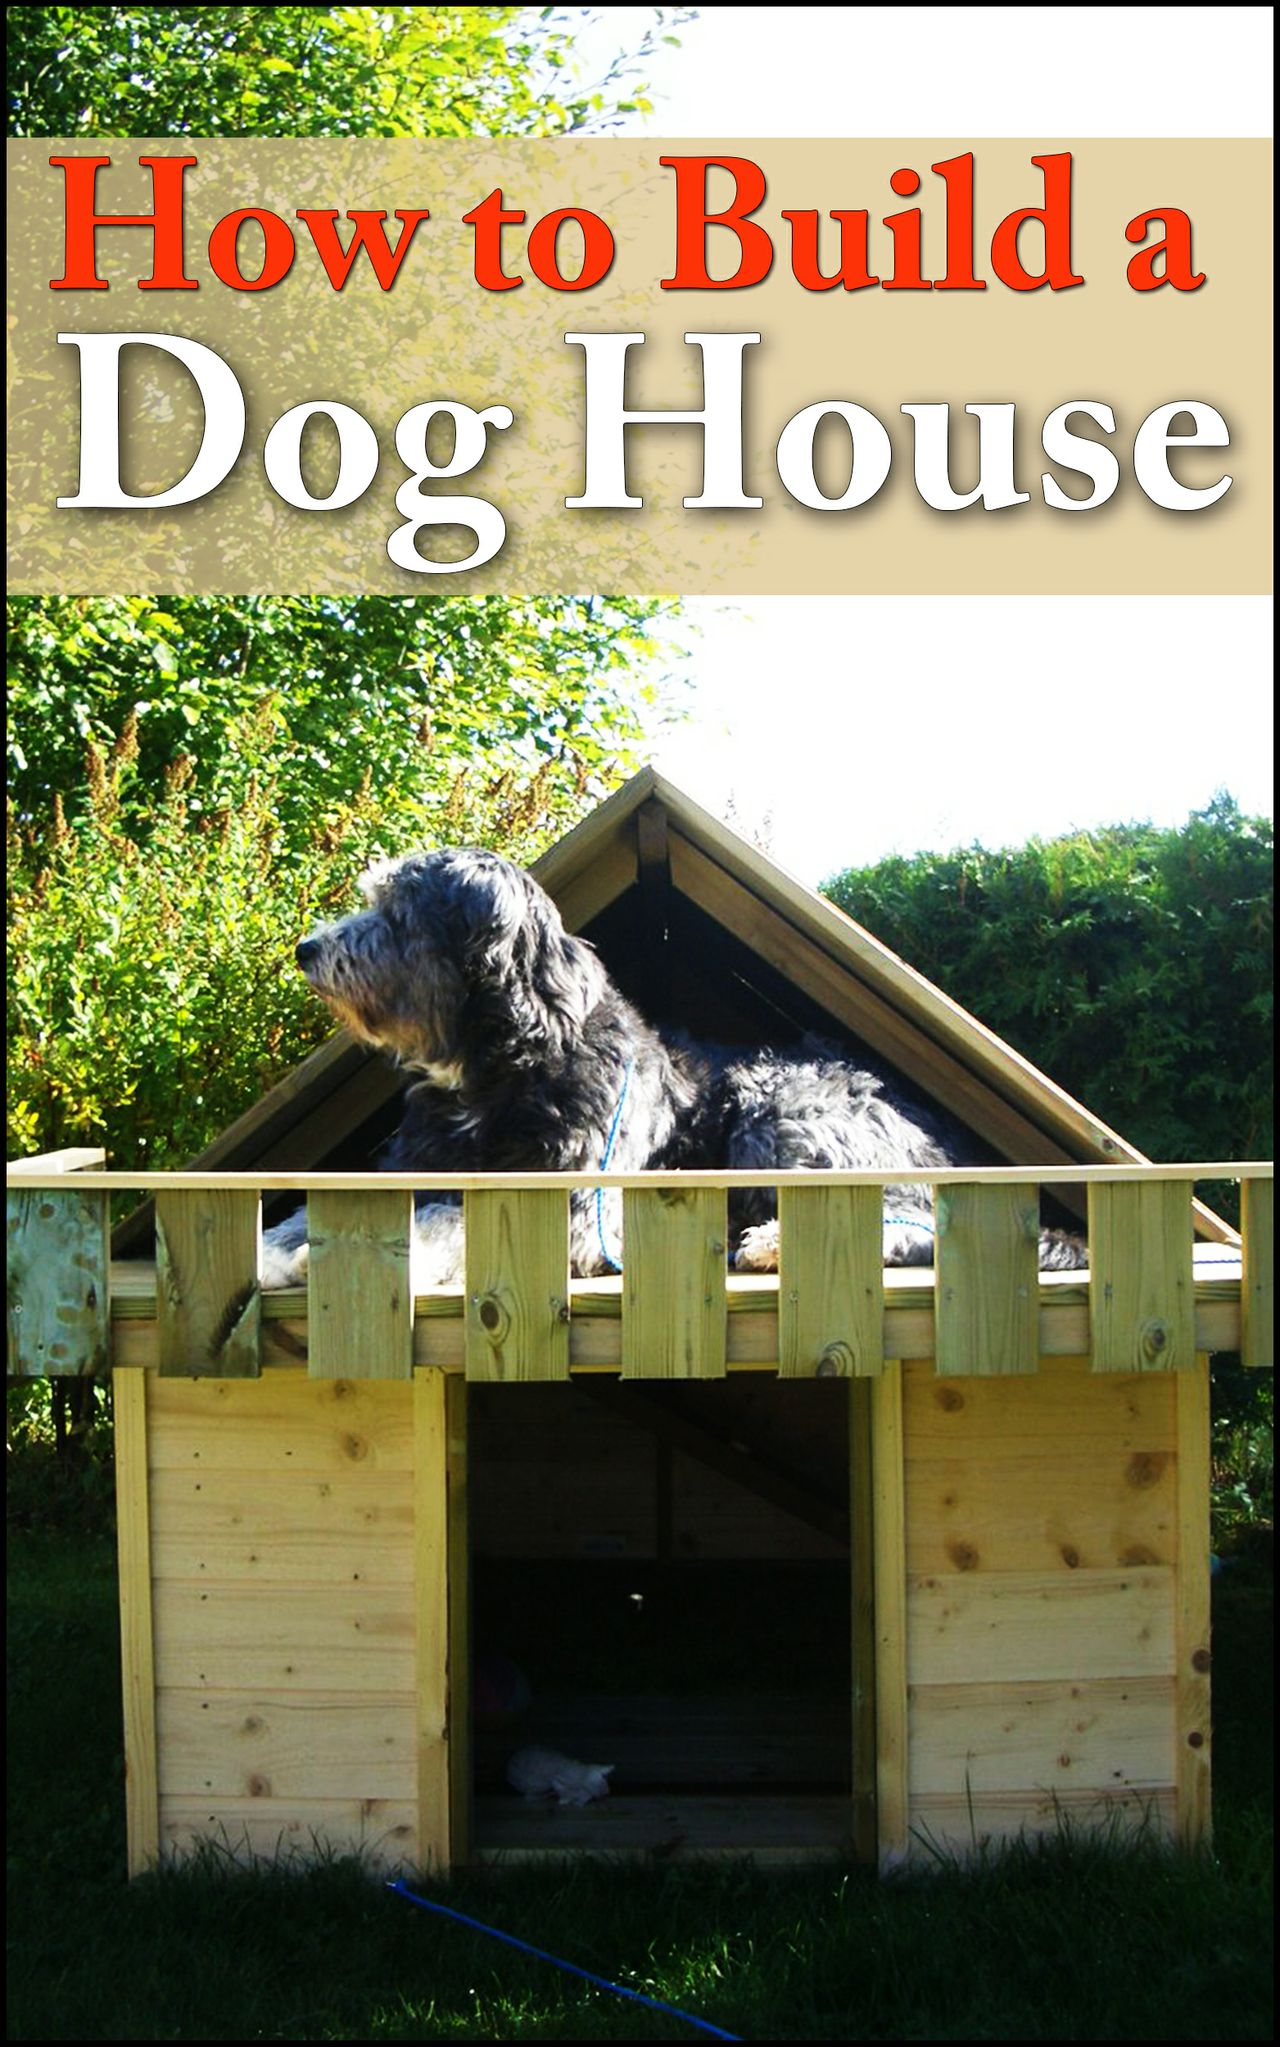 How To Build A Dog House: Providing Comfort For Your Outdoorsy Dog